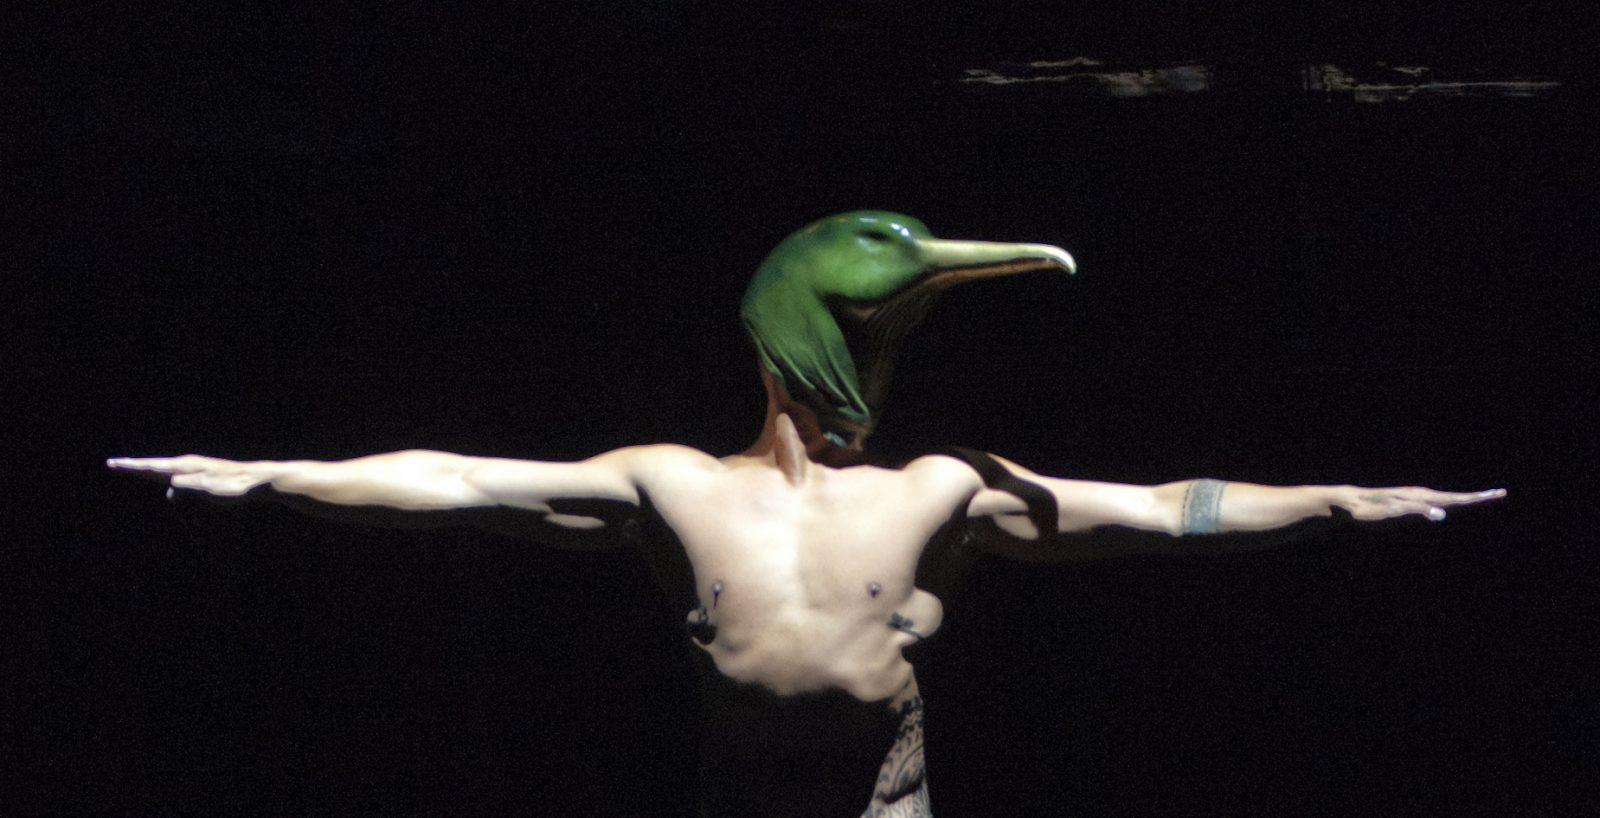 Een danser met vogelkop uit &#039;&#039;Birds with Skymirrors&#039;&#039;. Foto Sebastian Bolesch.